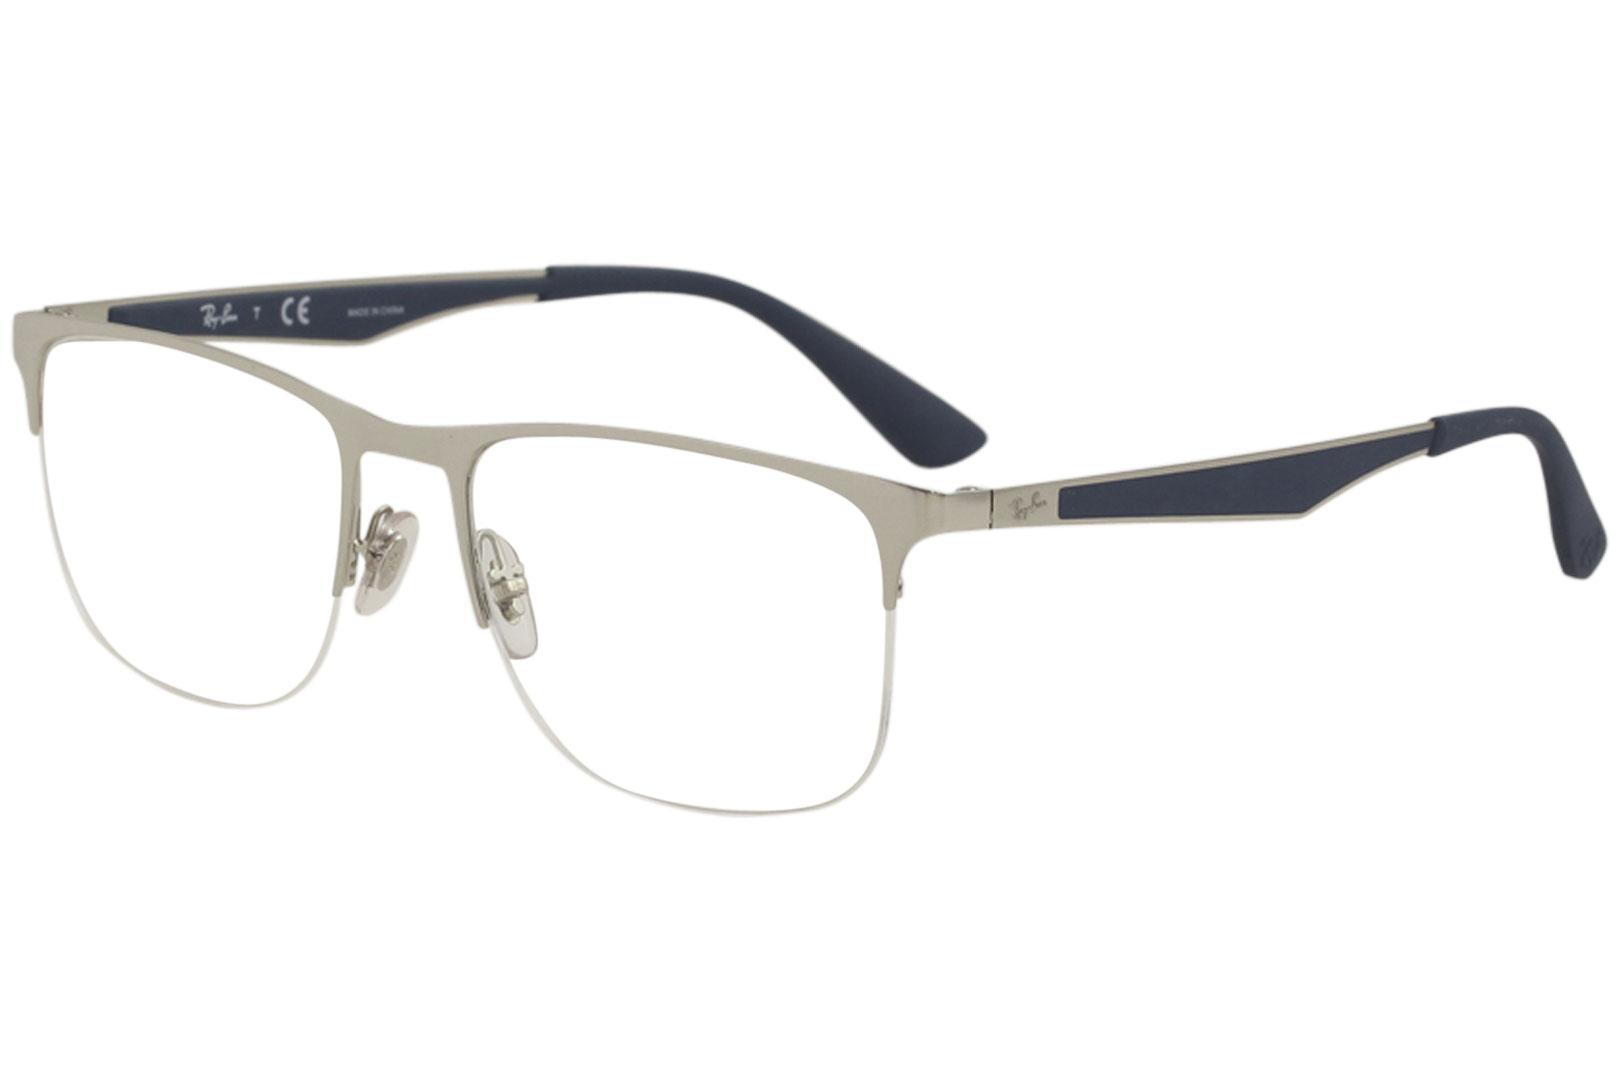 fb879bf06fd Ray Ban Men s Eyeglasses RX6362 RX 6362 RayBan Half Rim Optical Frame